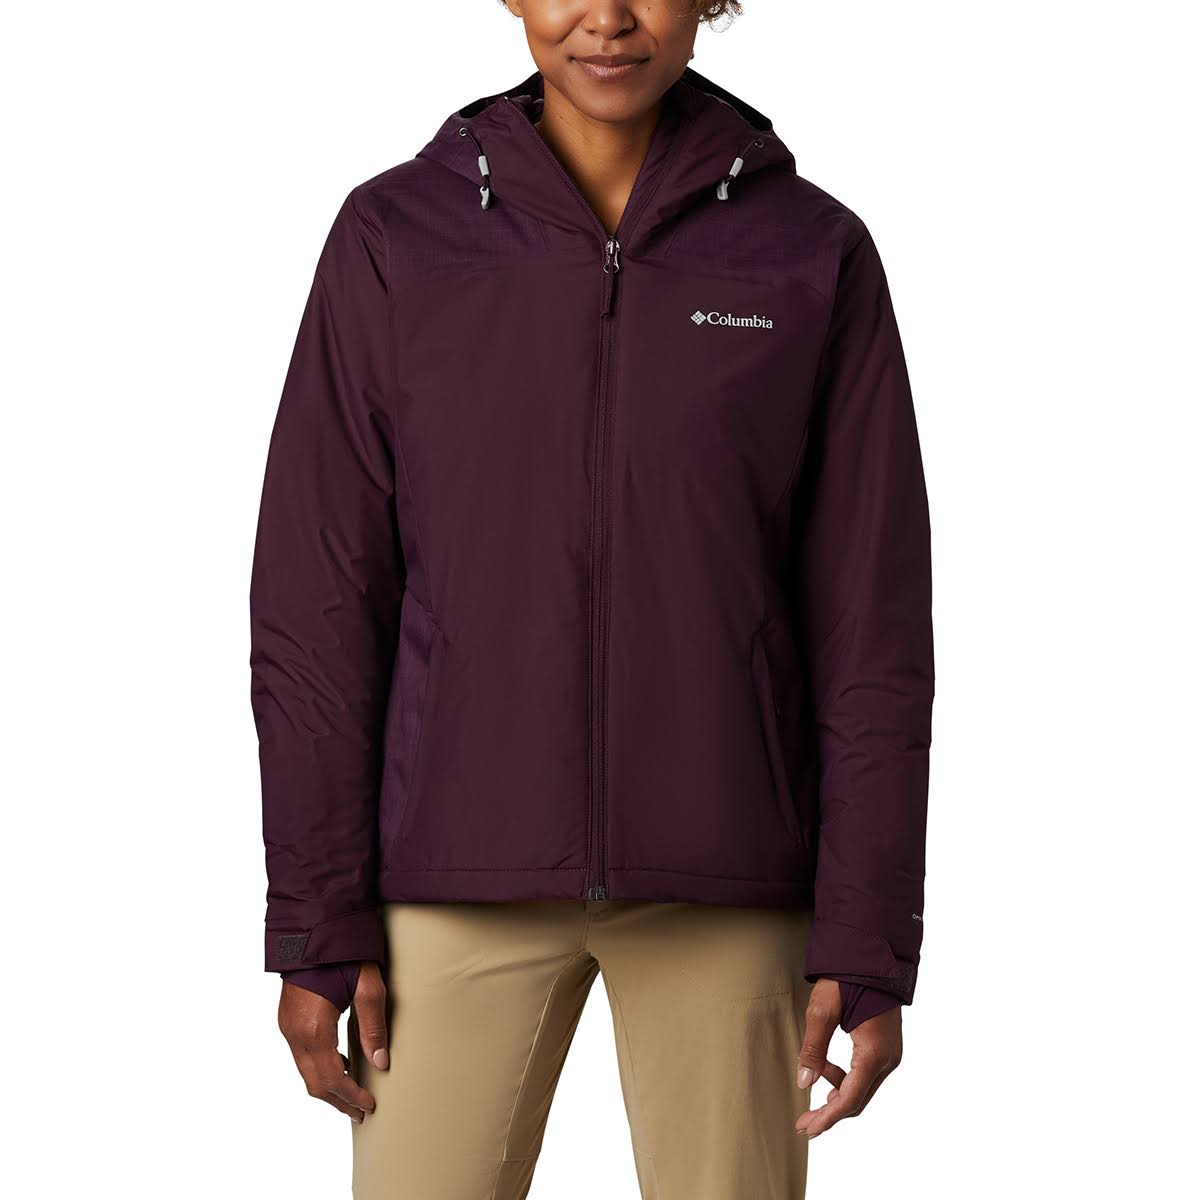 Columbia Women's Tipton Peak Insulated Hooded Jacket - Red